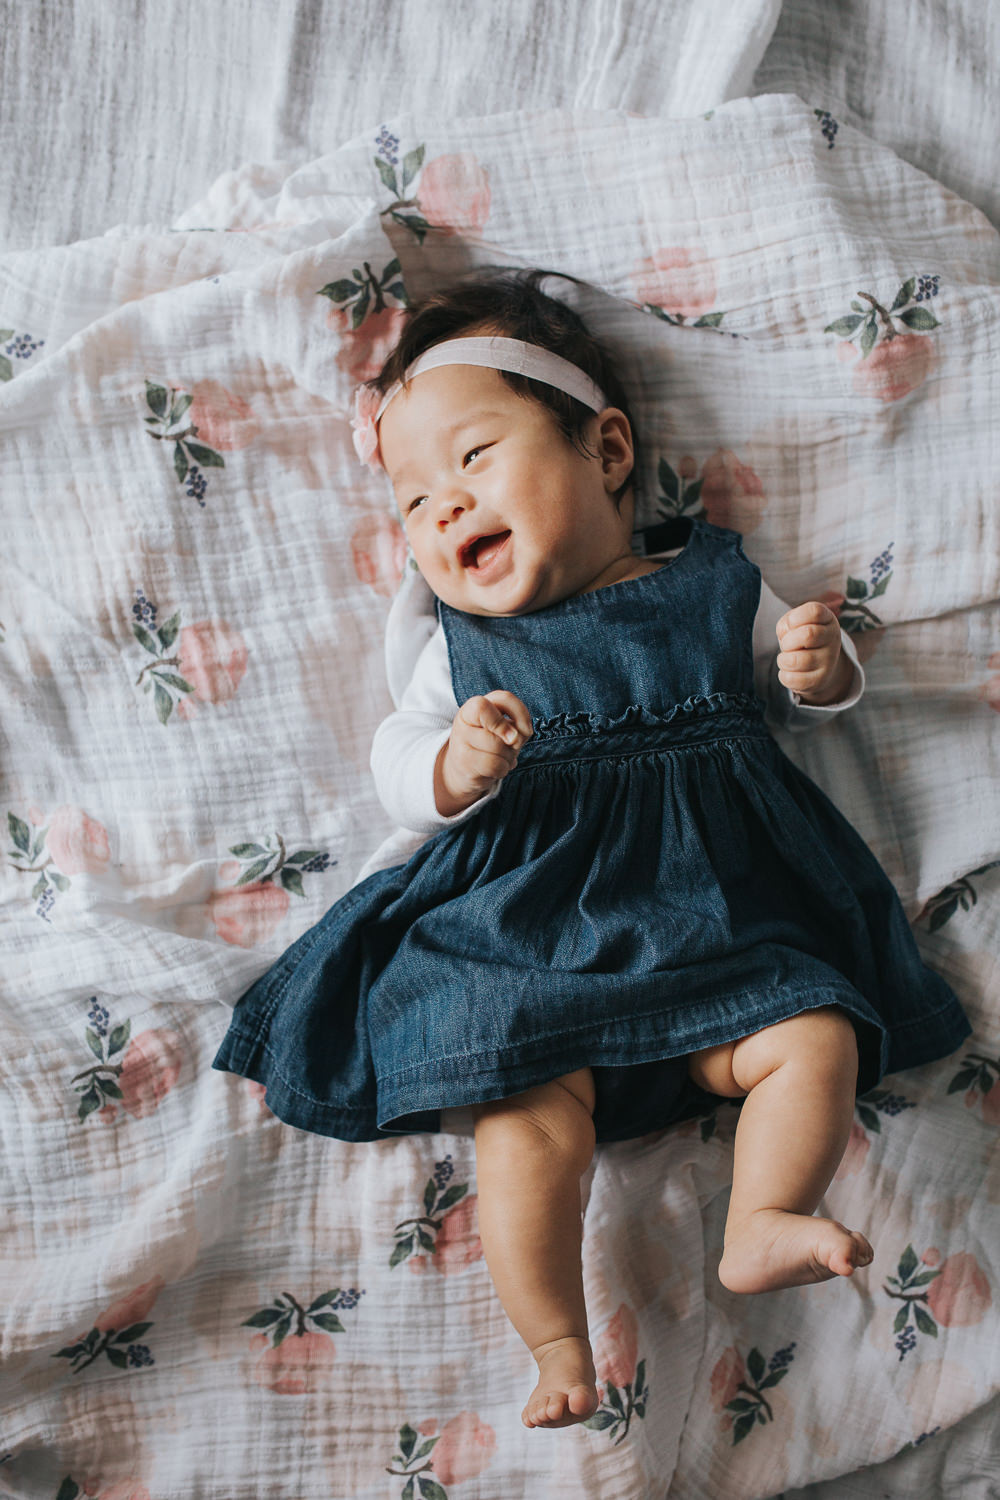 3 month old baby girl in blue dress and pink headband lying on floral blanket laughing -Markham Lifestyle Photography